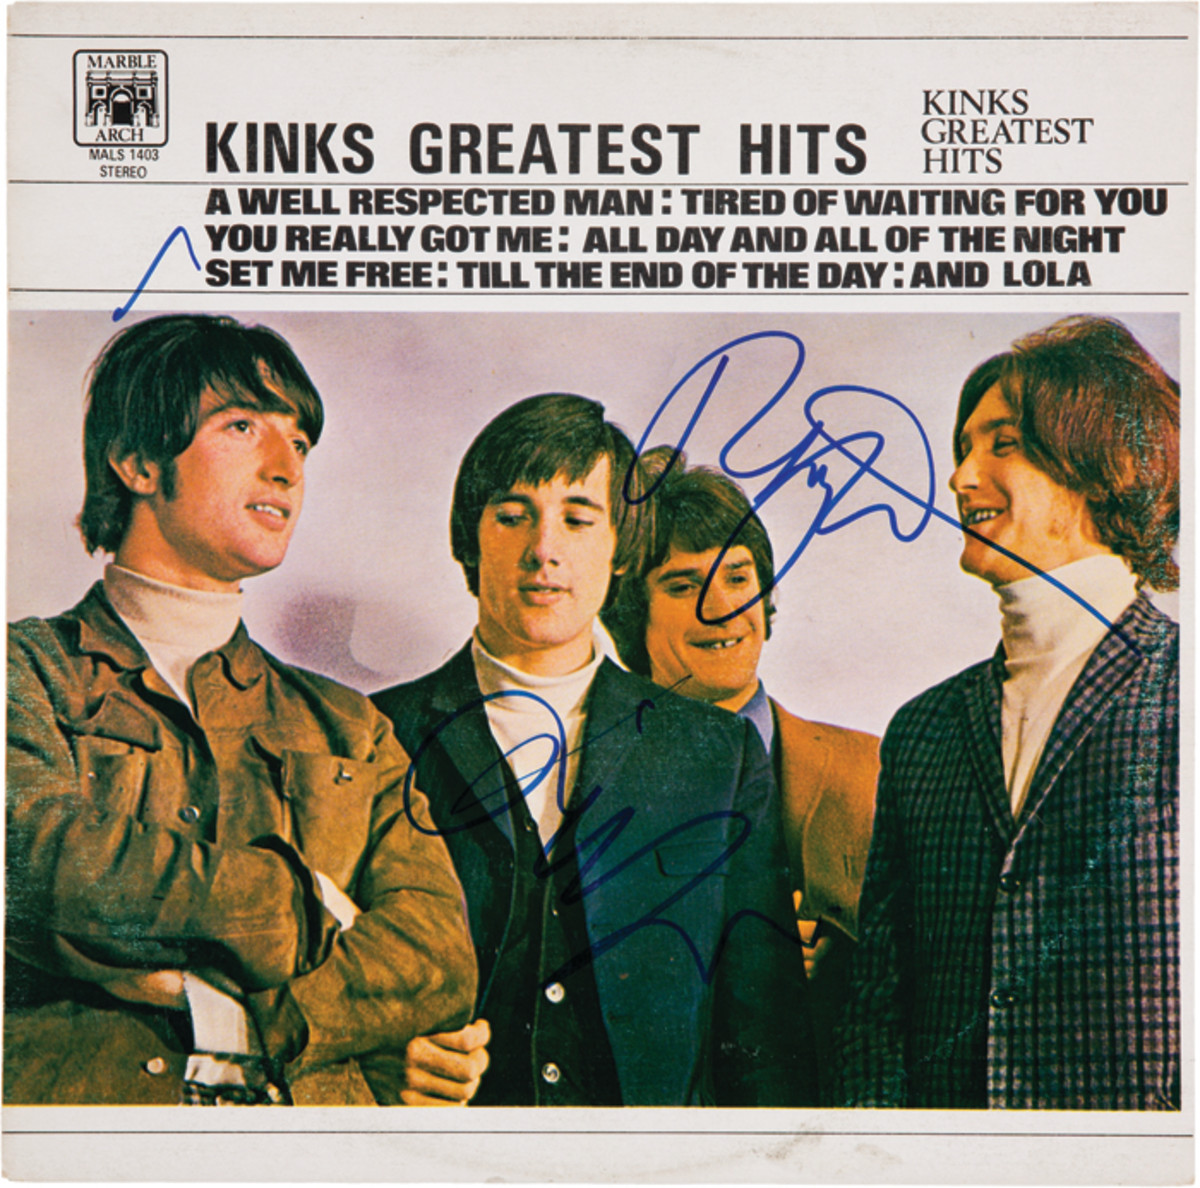 """This album cover (minus the vinyl) of """"Kinks Greatest Hits"""" (Marble Arch Records MALS 1403, Canadian, 1975) was signed by both Ray and Dave Davies and sold by Heritage Auctions this year for a cool $400. Photo image courtesy of HA.com."""